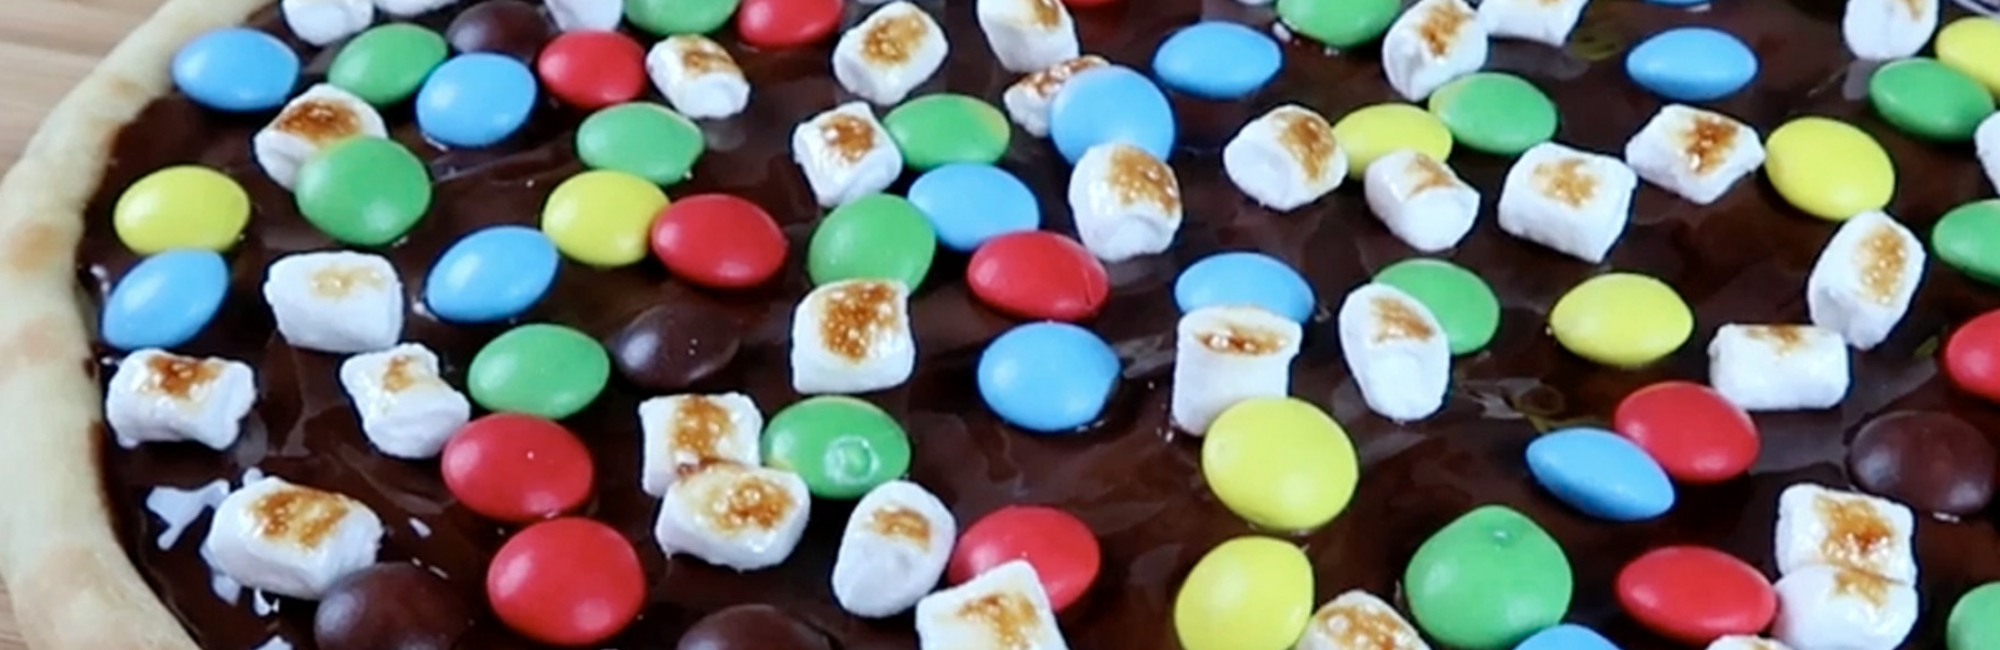 chocolade, m&m's, marshmallows, deeg, pizza